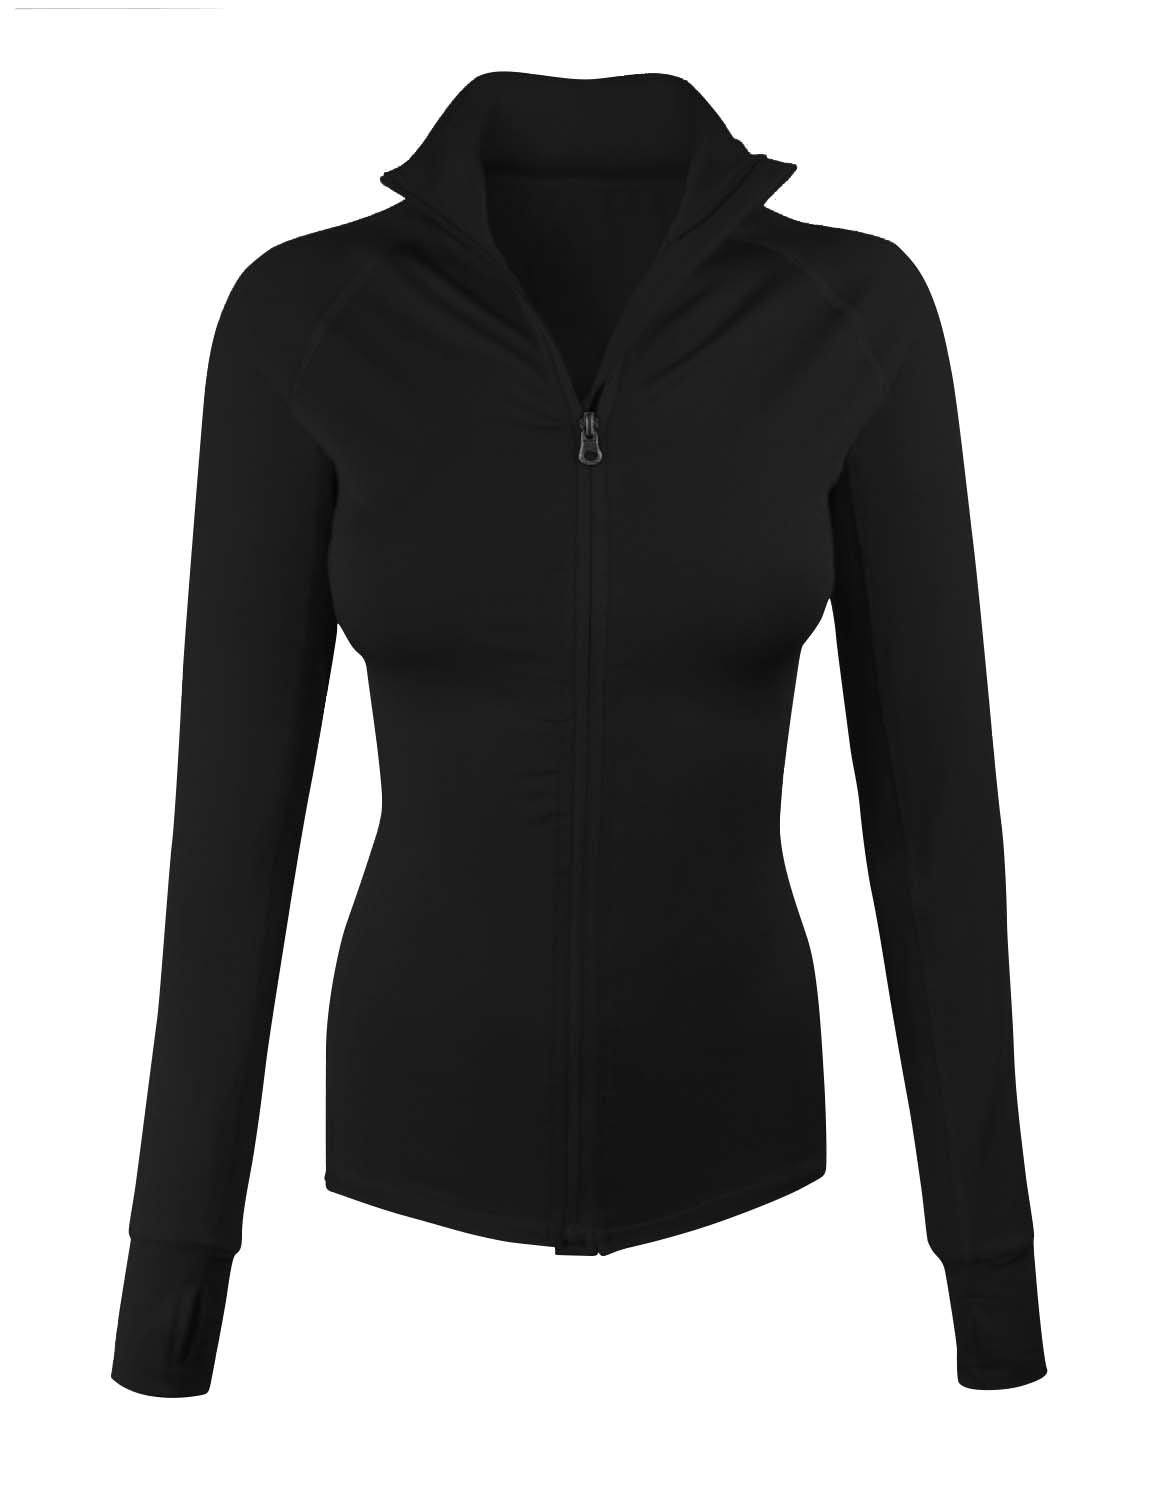 makeitmint Women's Comfy Zip Up Stretchy Work Out Track Jacket w/Back Pocket Medium YJZ0002_02BLACK